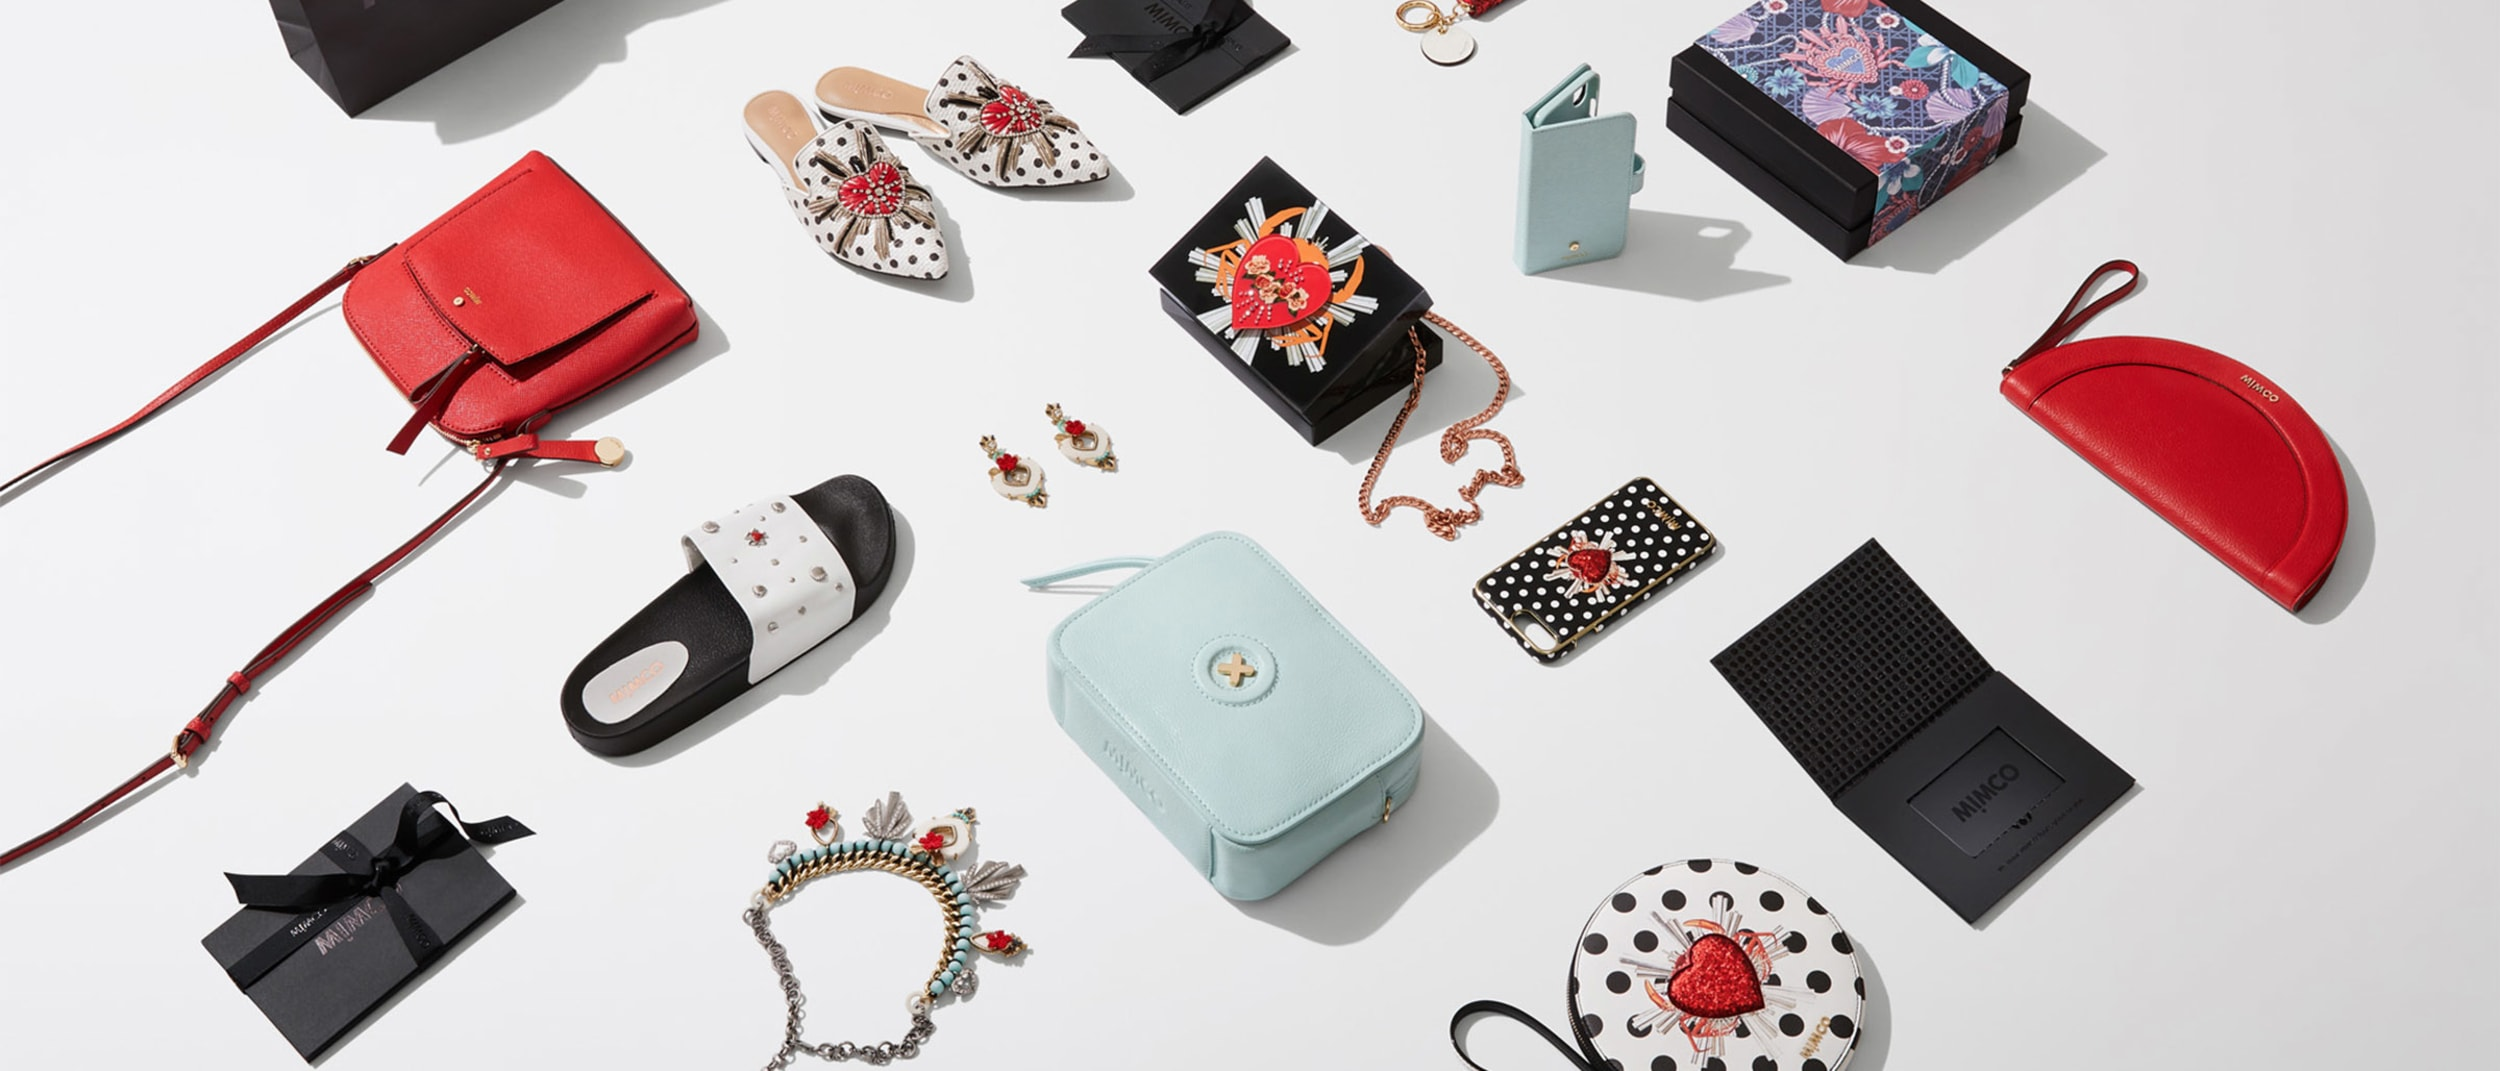 Celebrate with MIMCO as they open their new boutique store